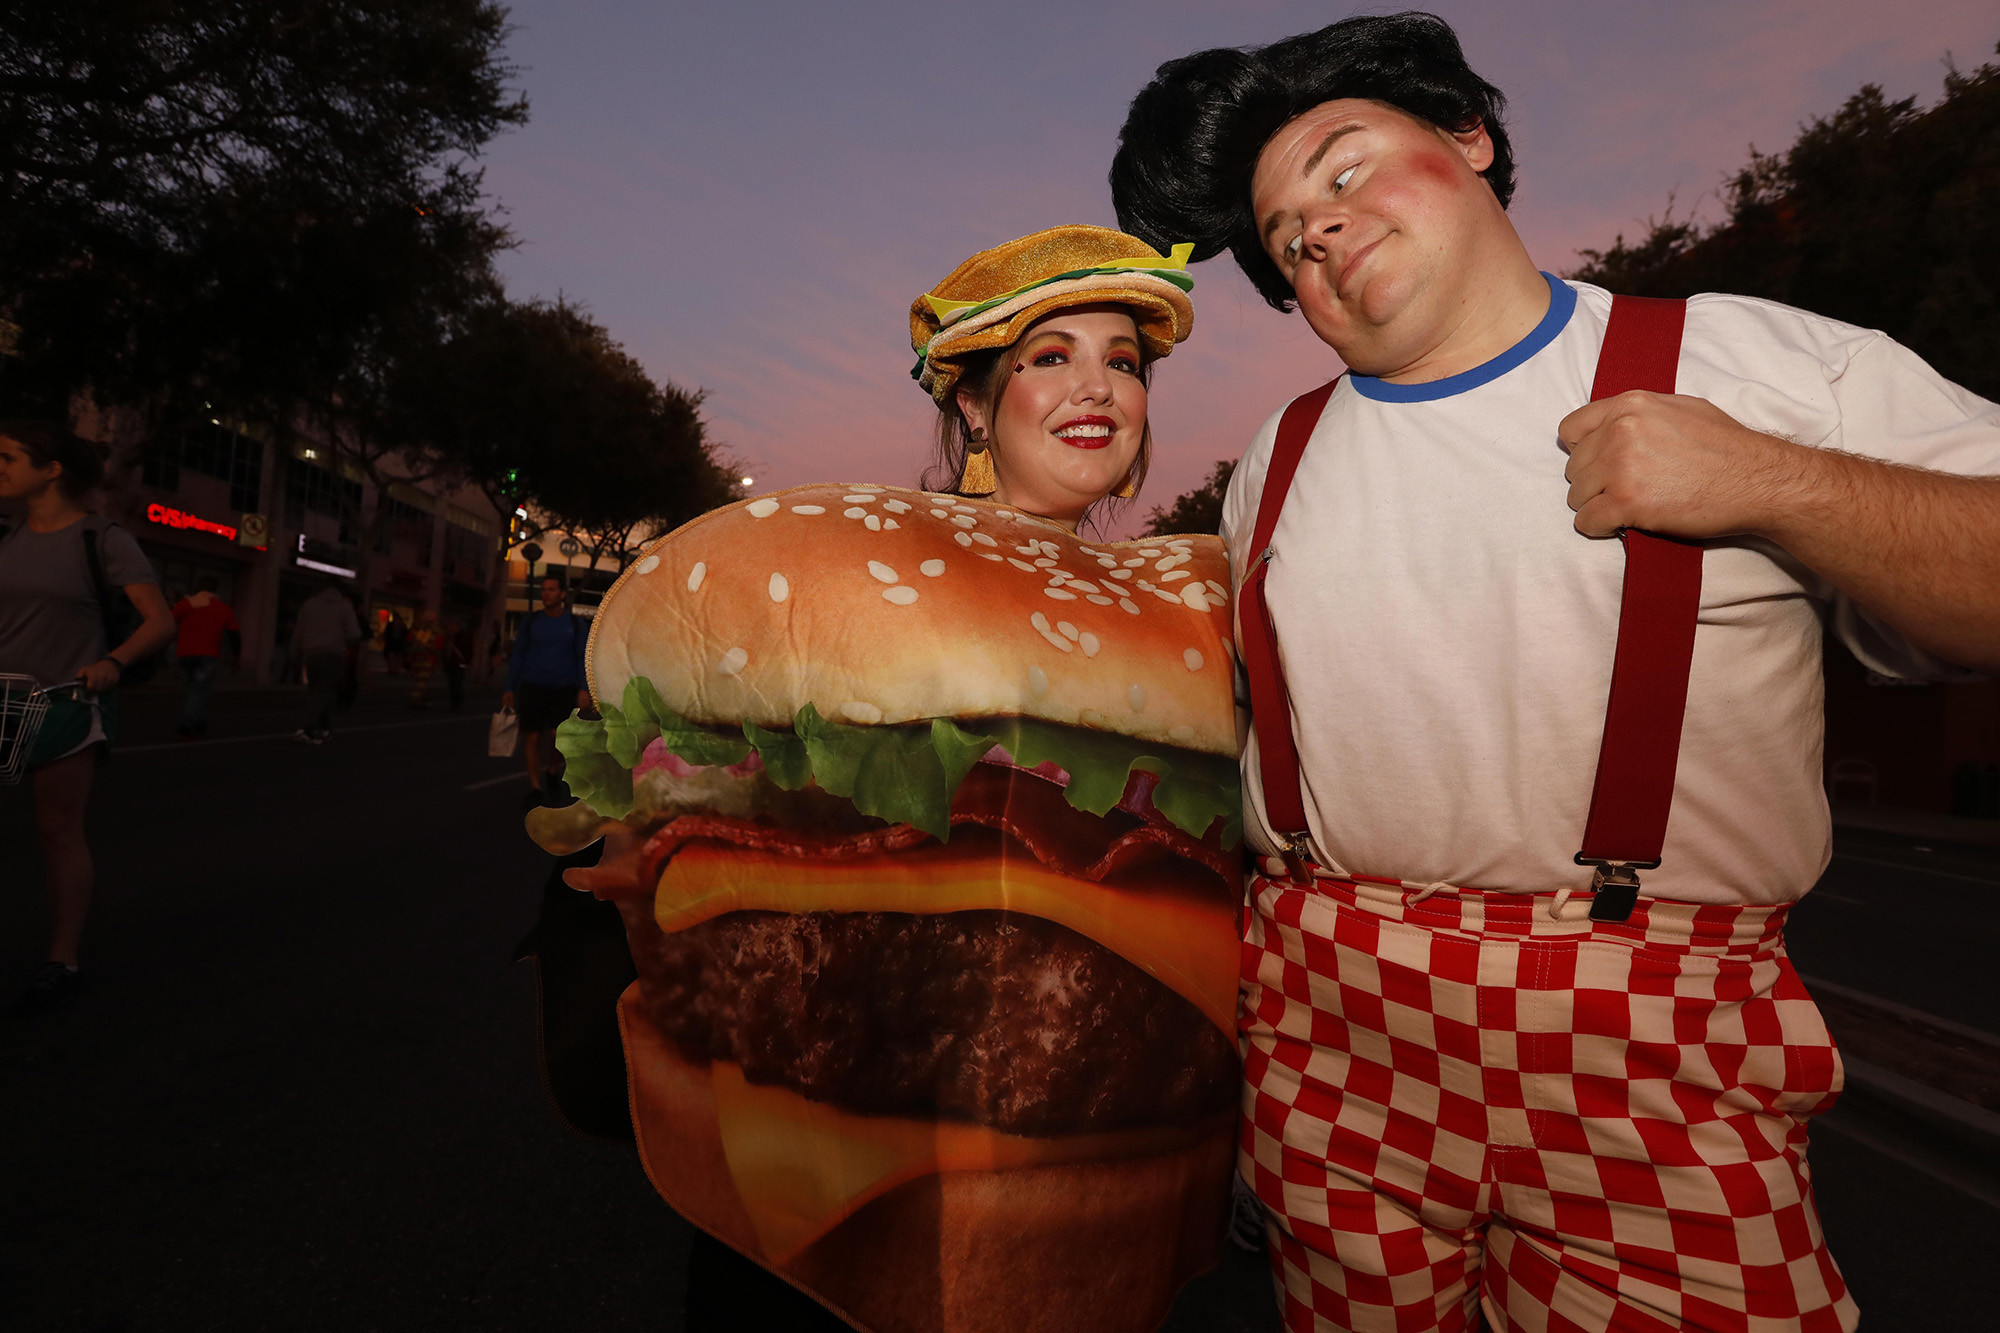 WEST HOLLYWOOD, CA – OCTOBER 31, 2018 - - Stephanie Dobies, dressed as a hamburger, and Aaron Marsh,